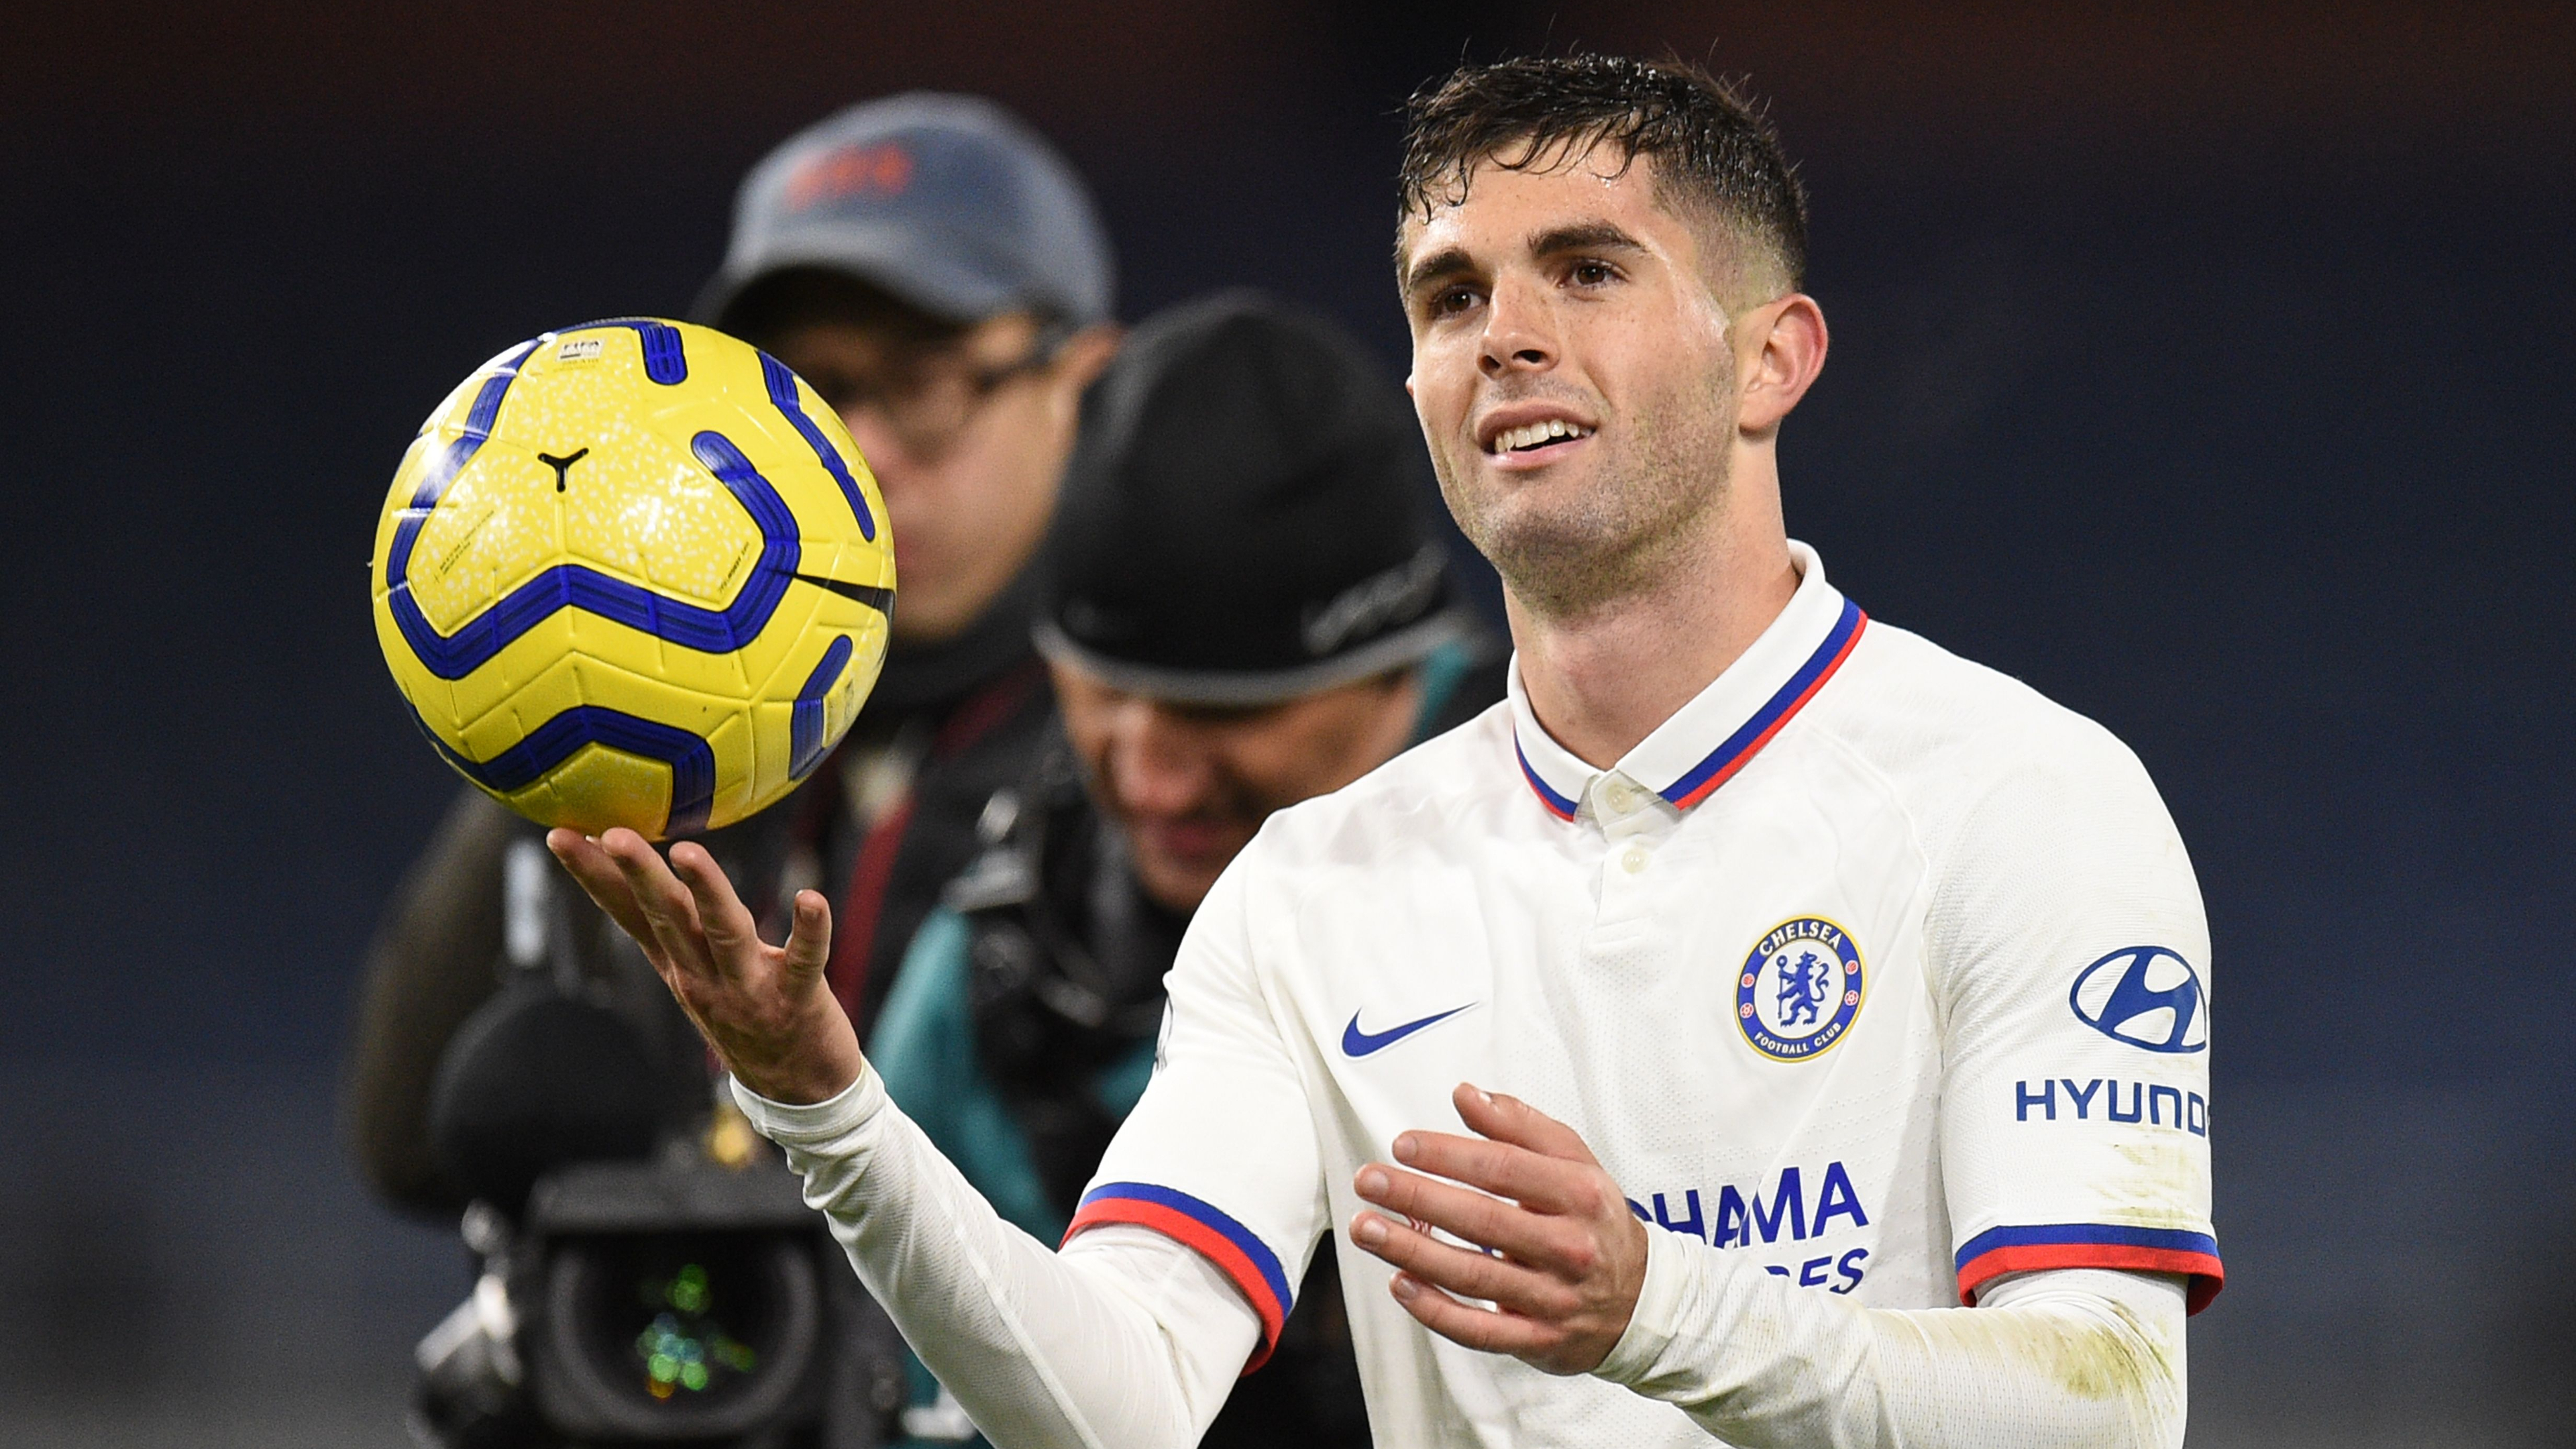 Pulisic didn't take injury seriously but USMNT star is '100 per cent fit' and ready for Chelsea return